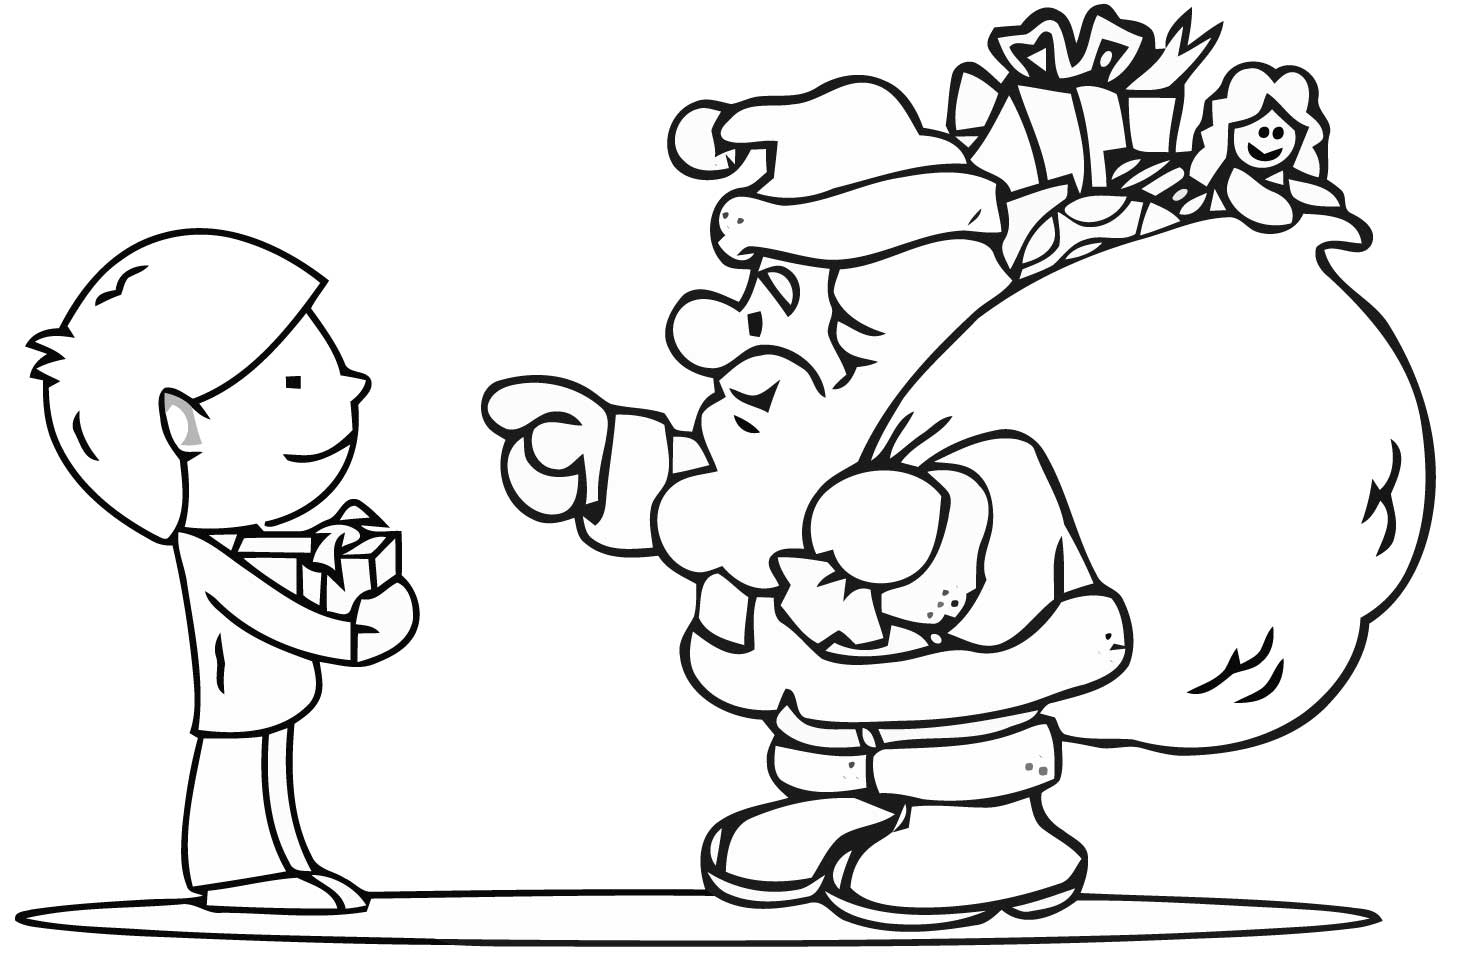 Free Christmas Colouring Pages For Children | Kids Online ...